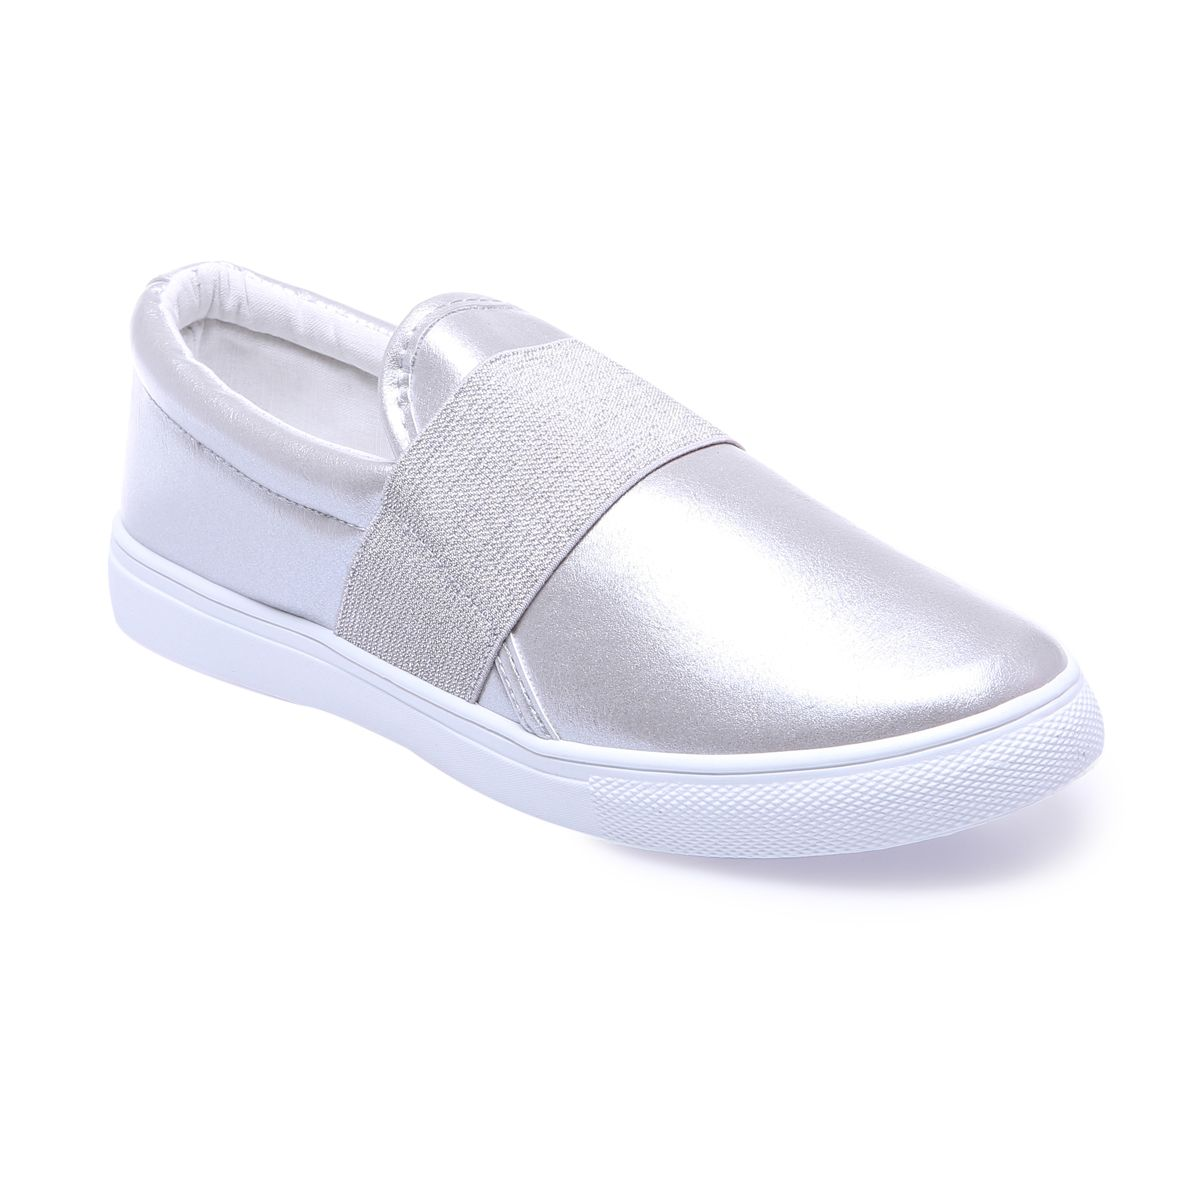 La Modeuse - Baskets de type slip-on aspect cuir kyXMw